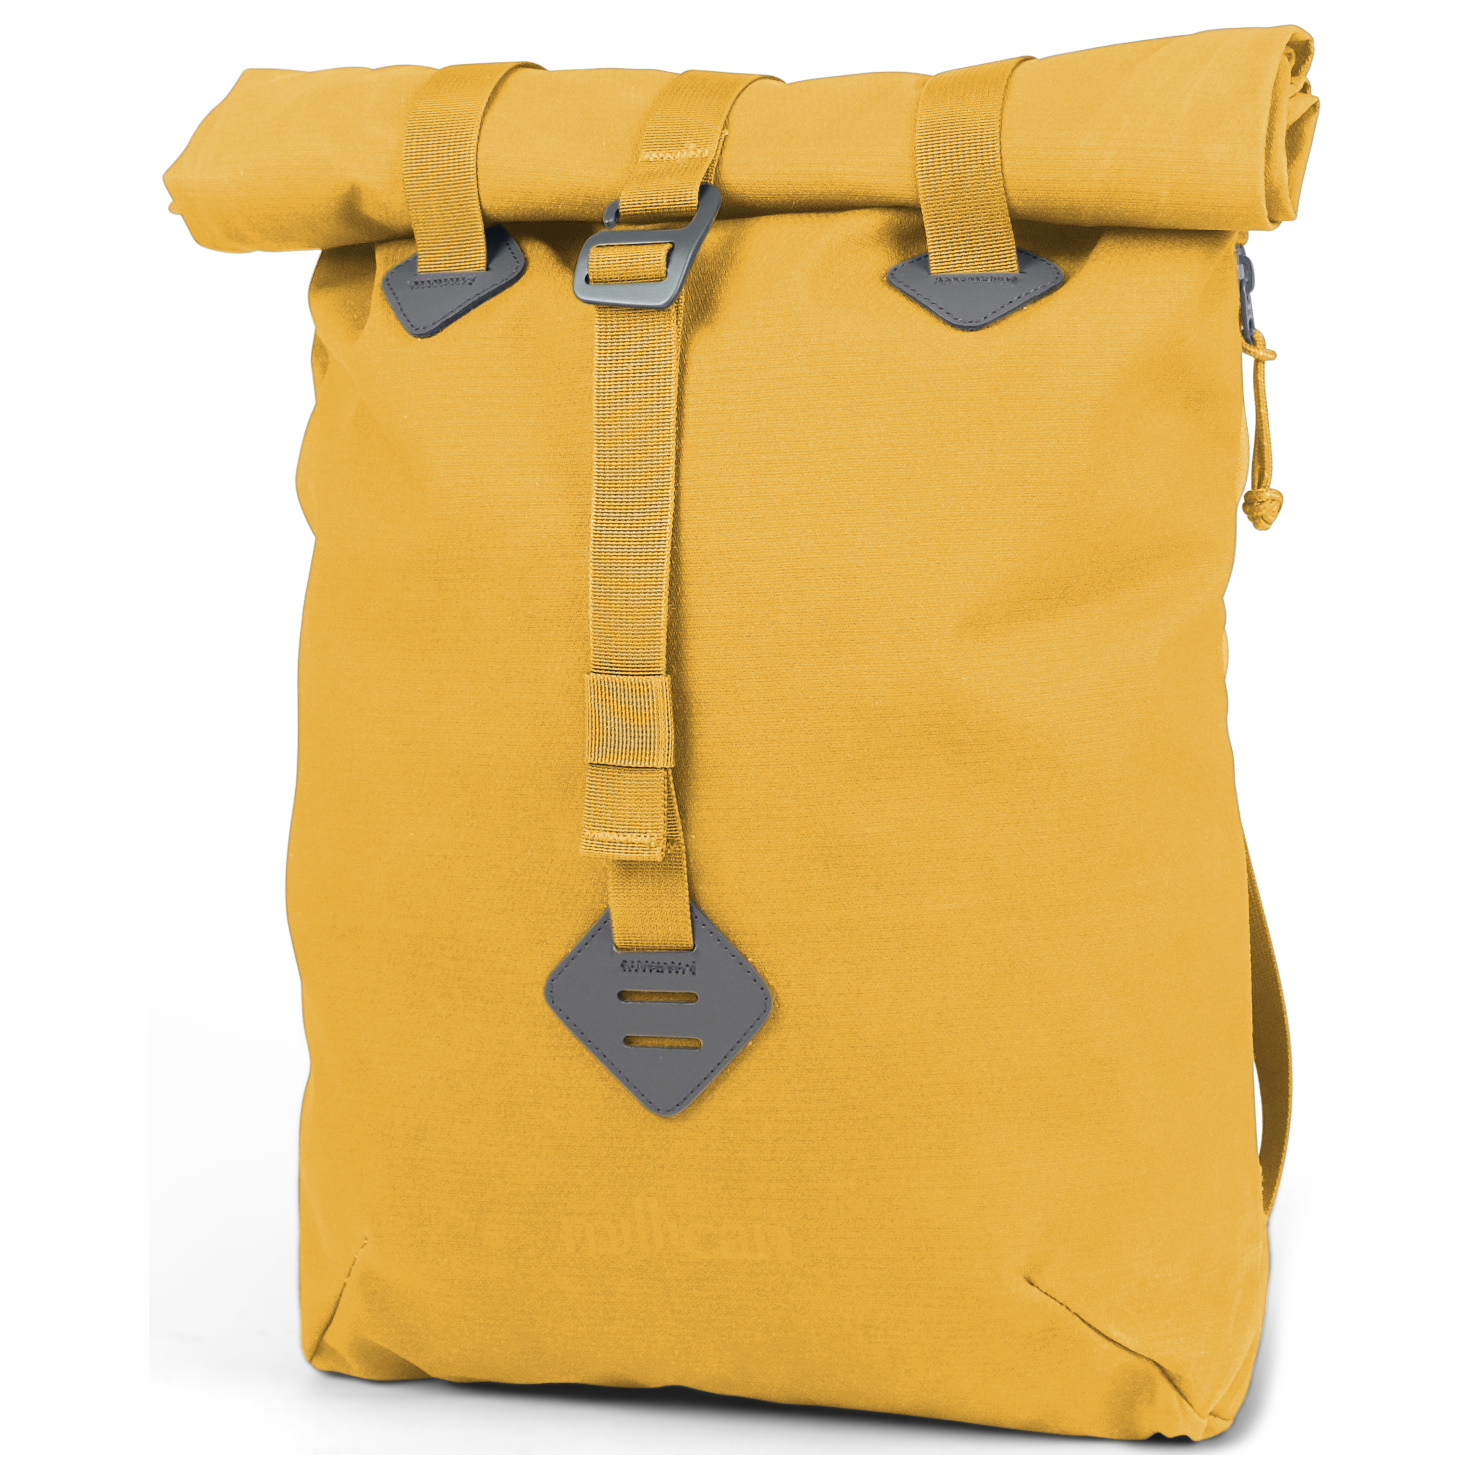 Millican - Tinsley the Tote Pack 14L - Sac à dos léger taille 14 l, orange